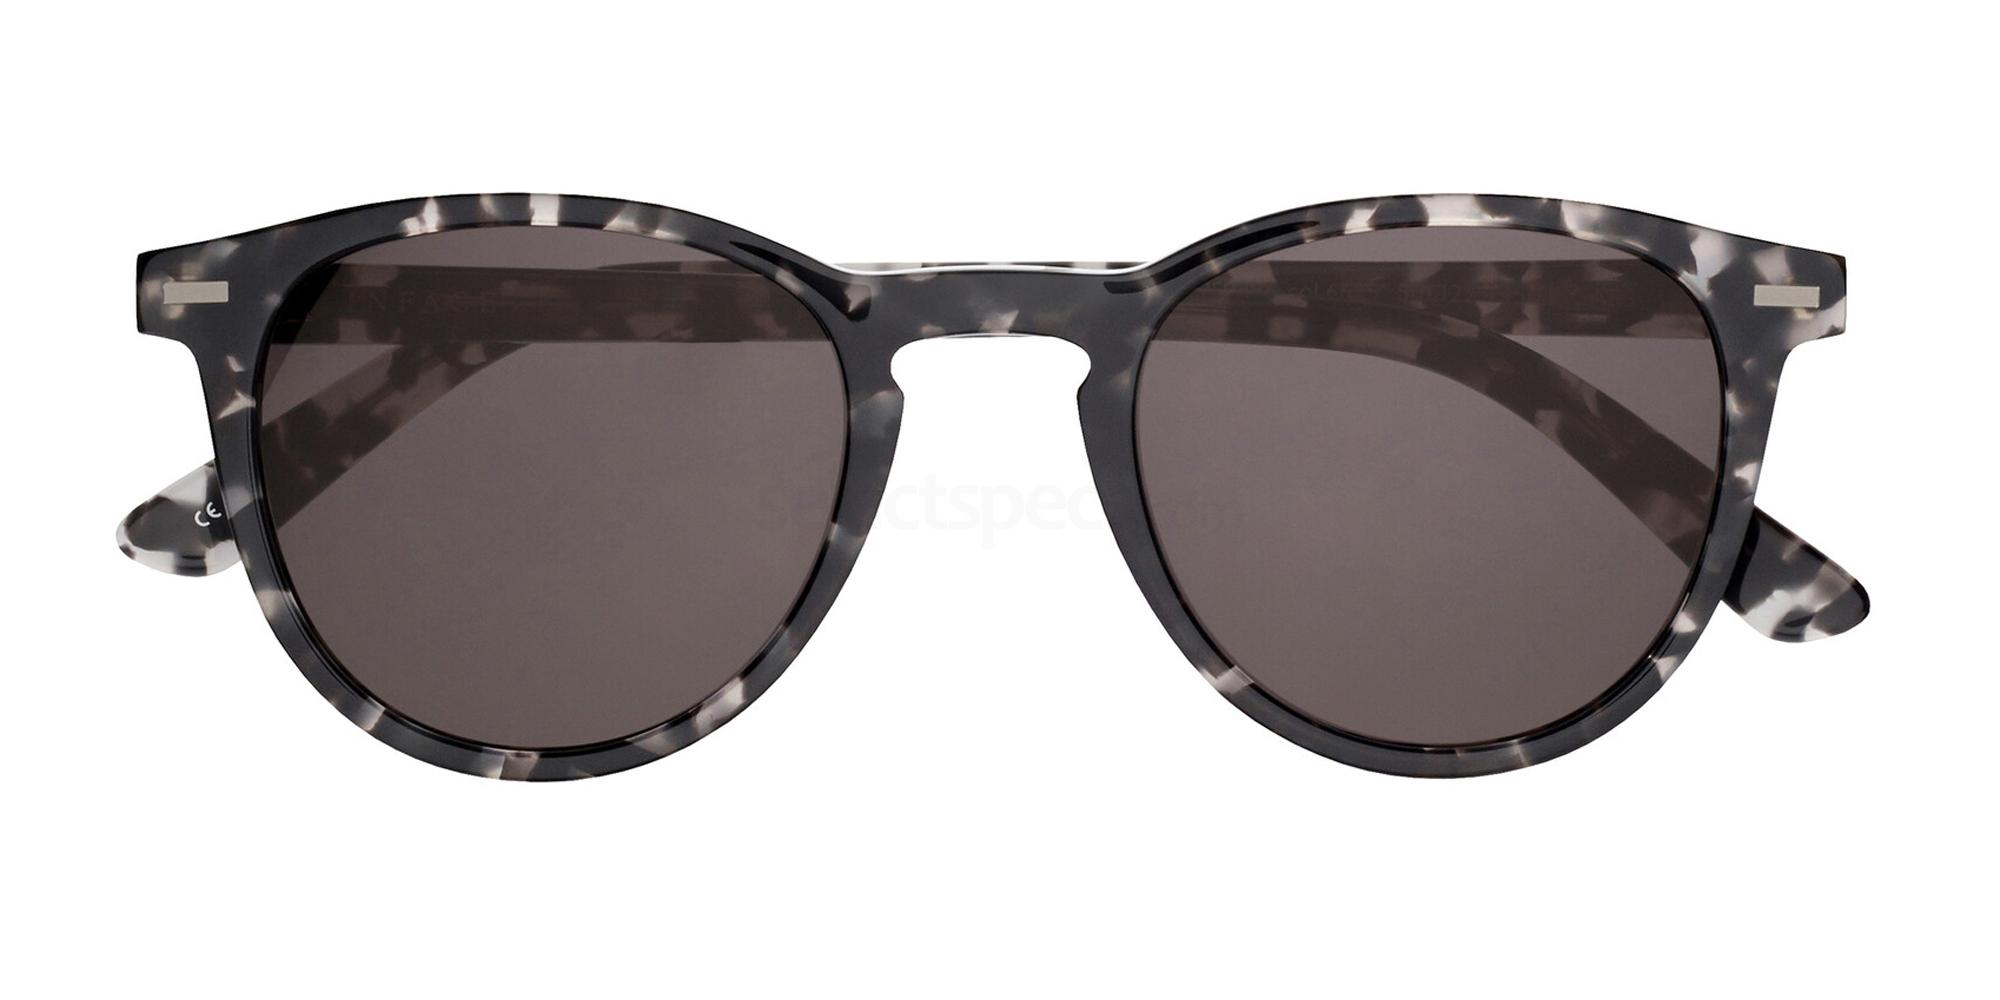 6525 IF9796 Sunglasses, Inface in Love